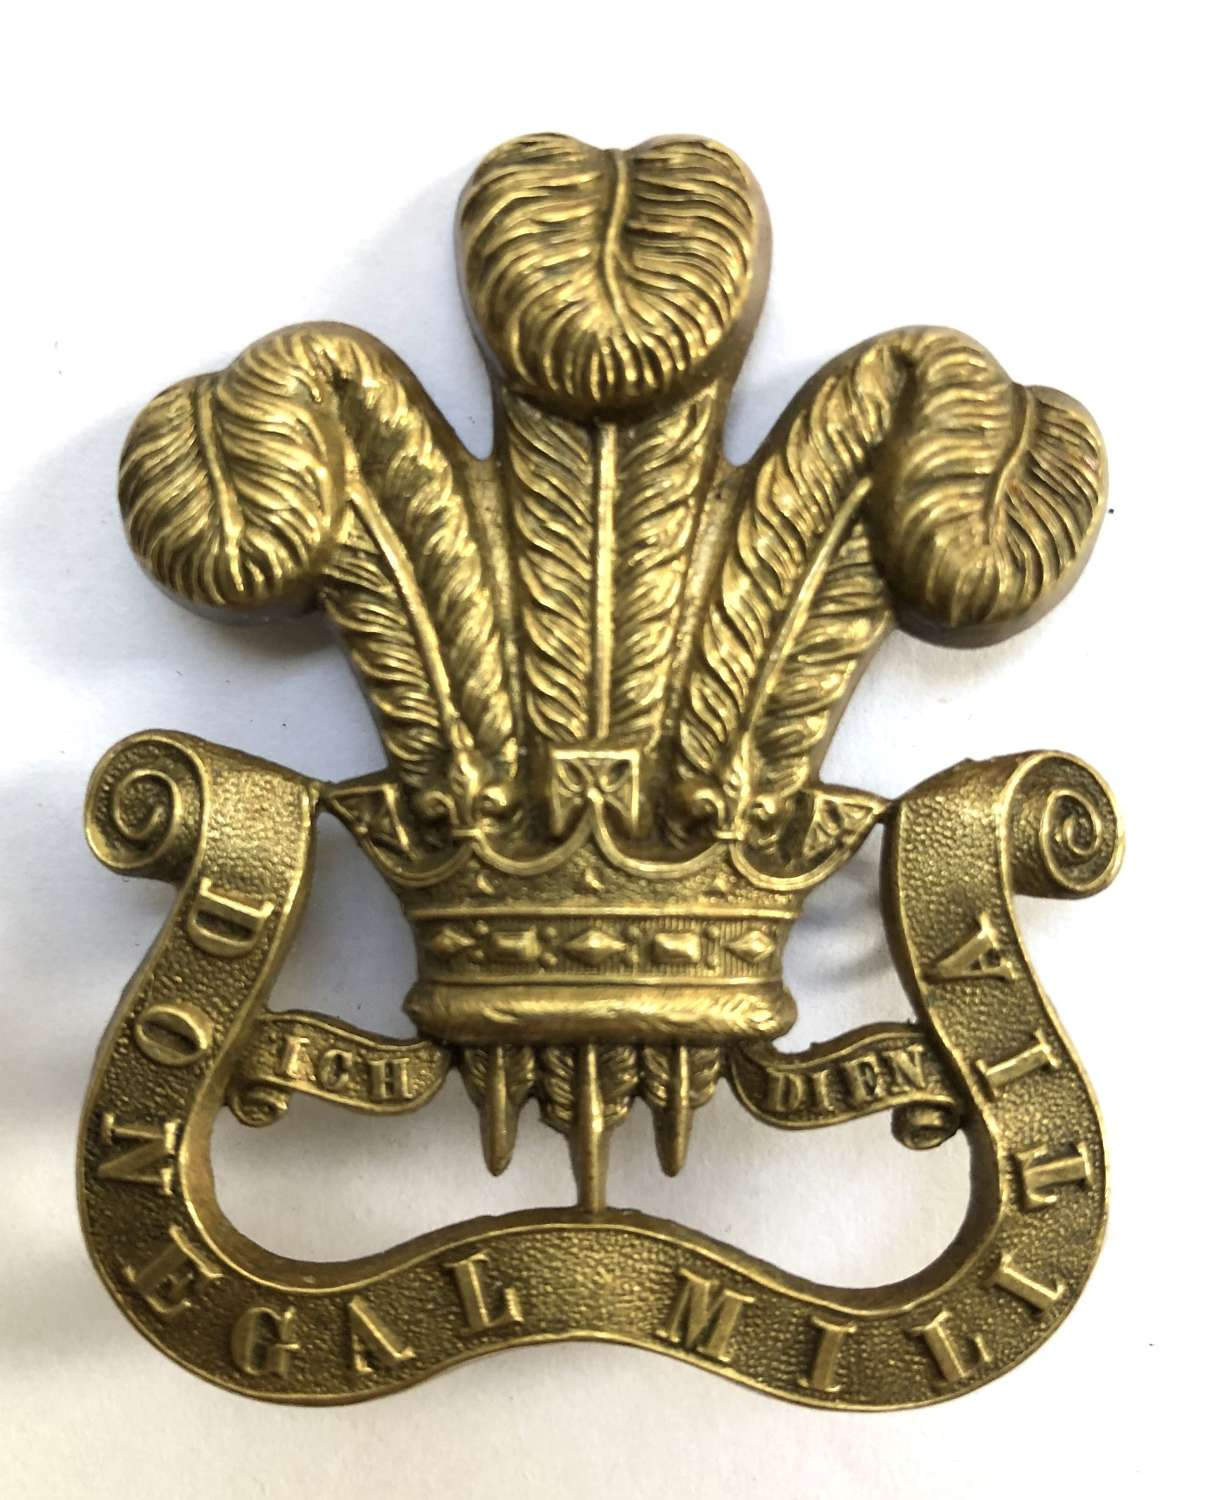 Irish. Prince of Wales's Own Donegal Militia Victorian glengarry bad